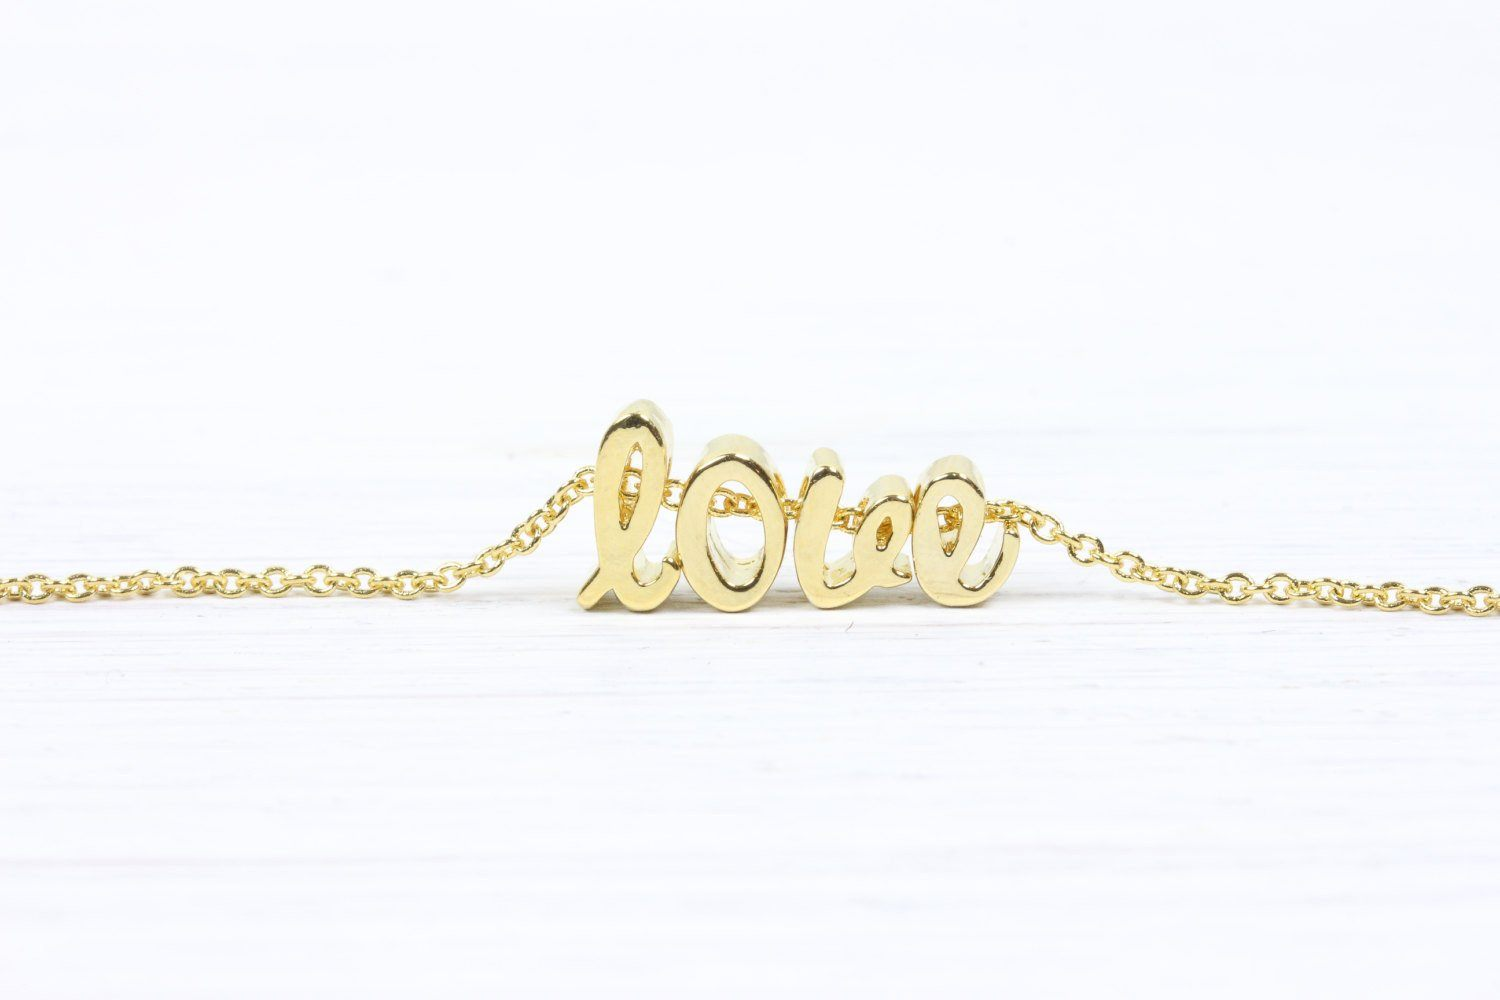 Gold Initial Cursive Letters Necklace - product_type] - Beautiz